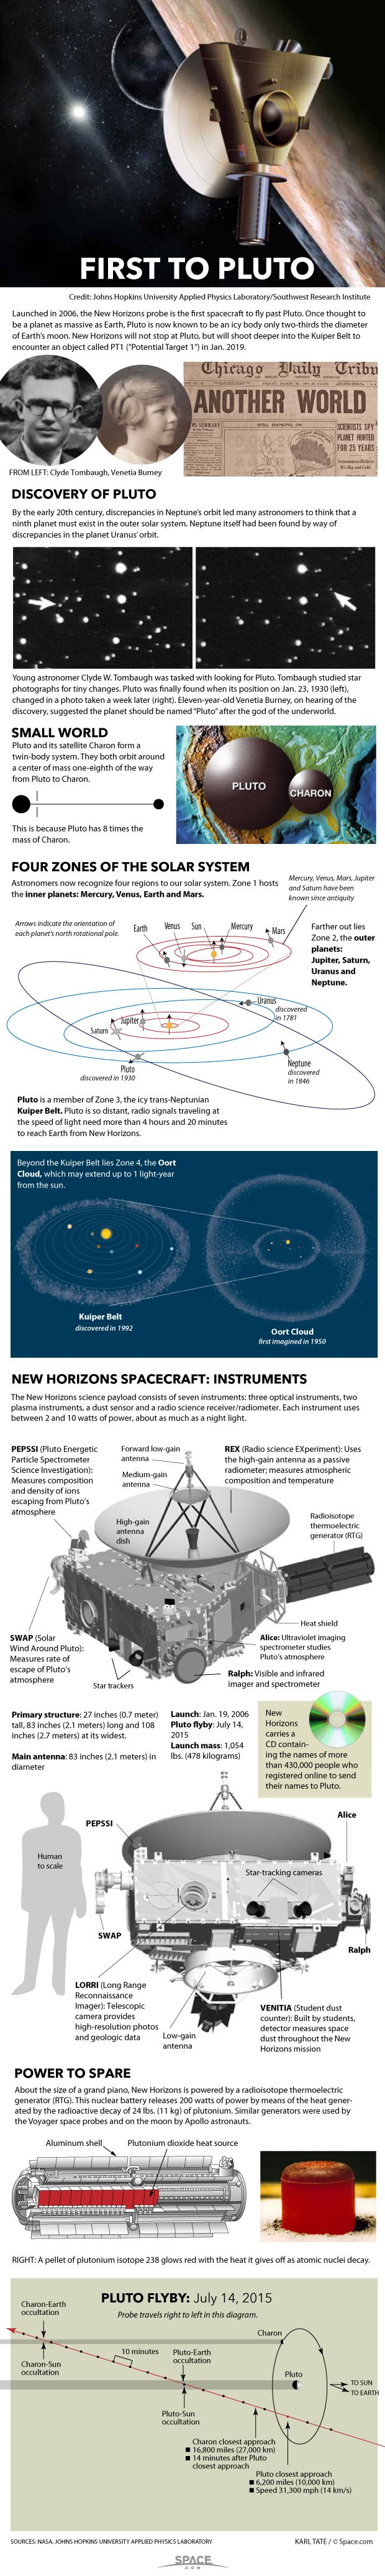 New Horizons becomes the first probe to explore Pluto in mid-2015. Oldie but goodie.